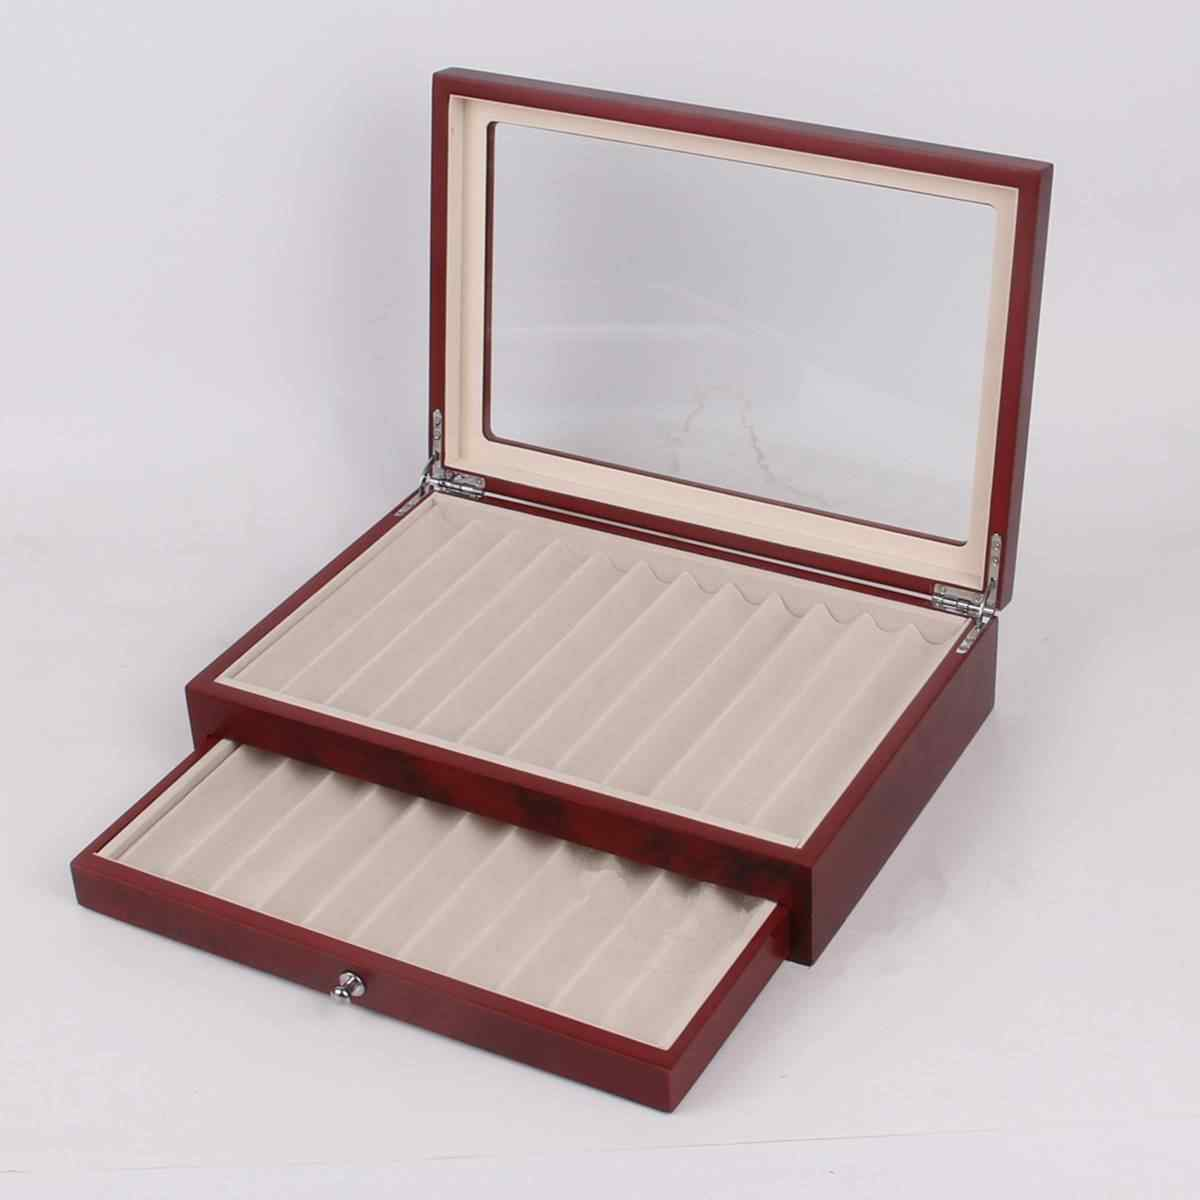 78 Pen Display Box Wood Pen Display Case Fountain Pen Storage Box Red Promotion